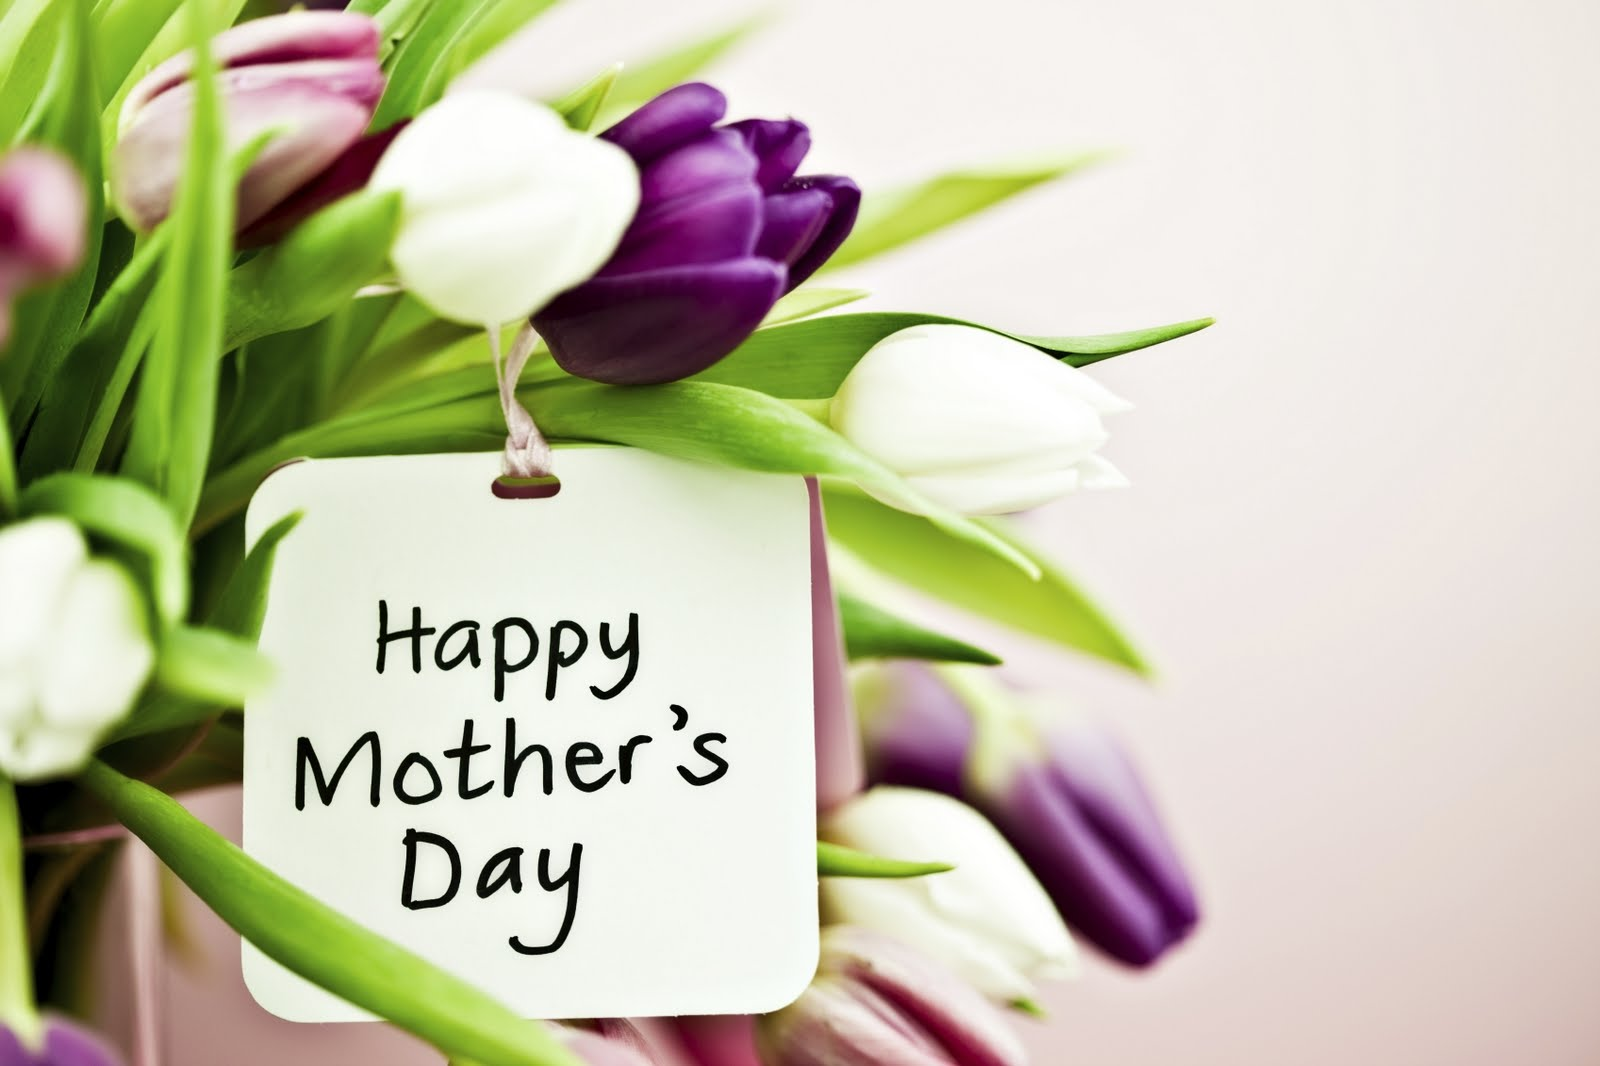 florist mother's day marketing ideas  floranext  florist, Natural flower